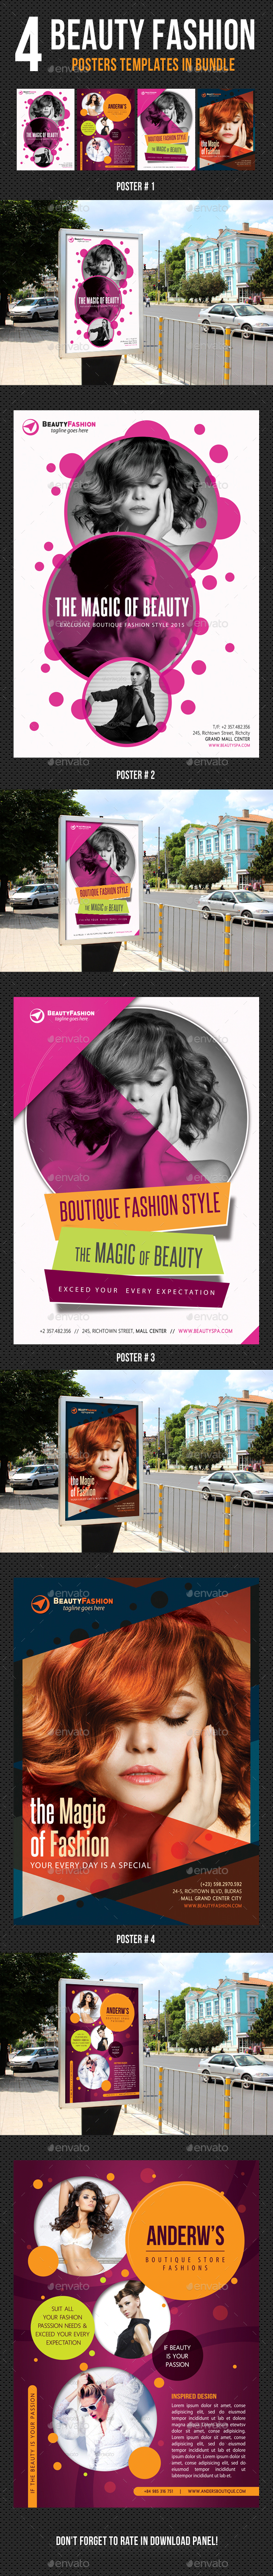 4 in 1 Beauty and Fashion Poster Bundle - Signage Print Templates